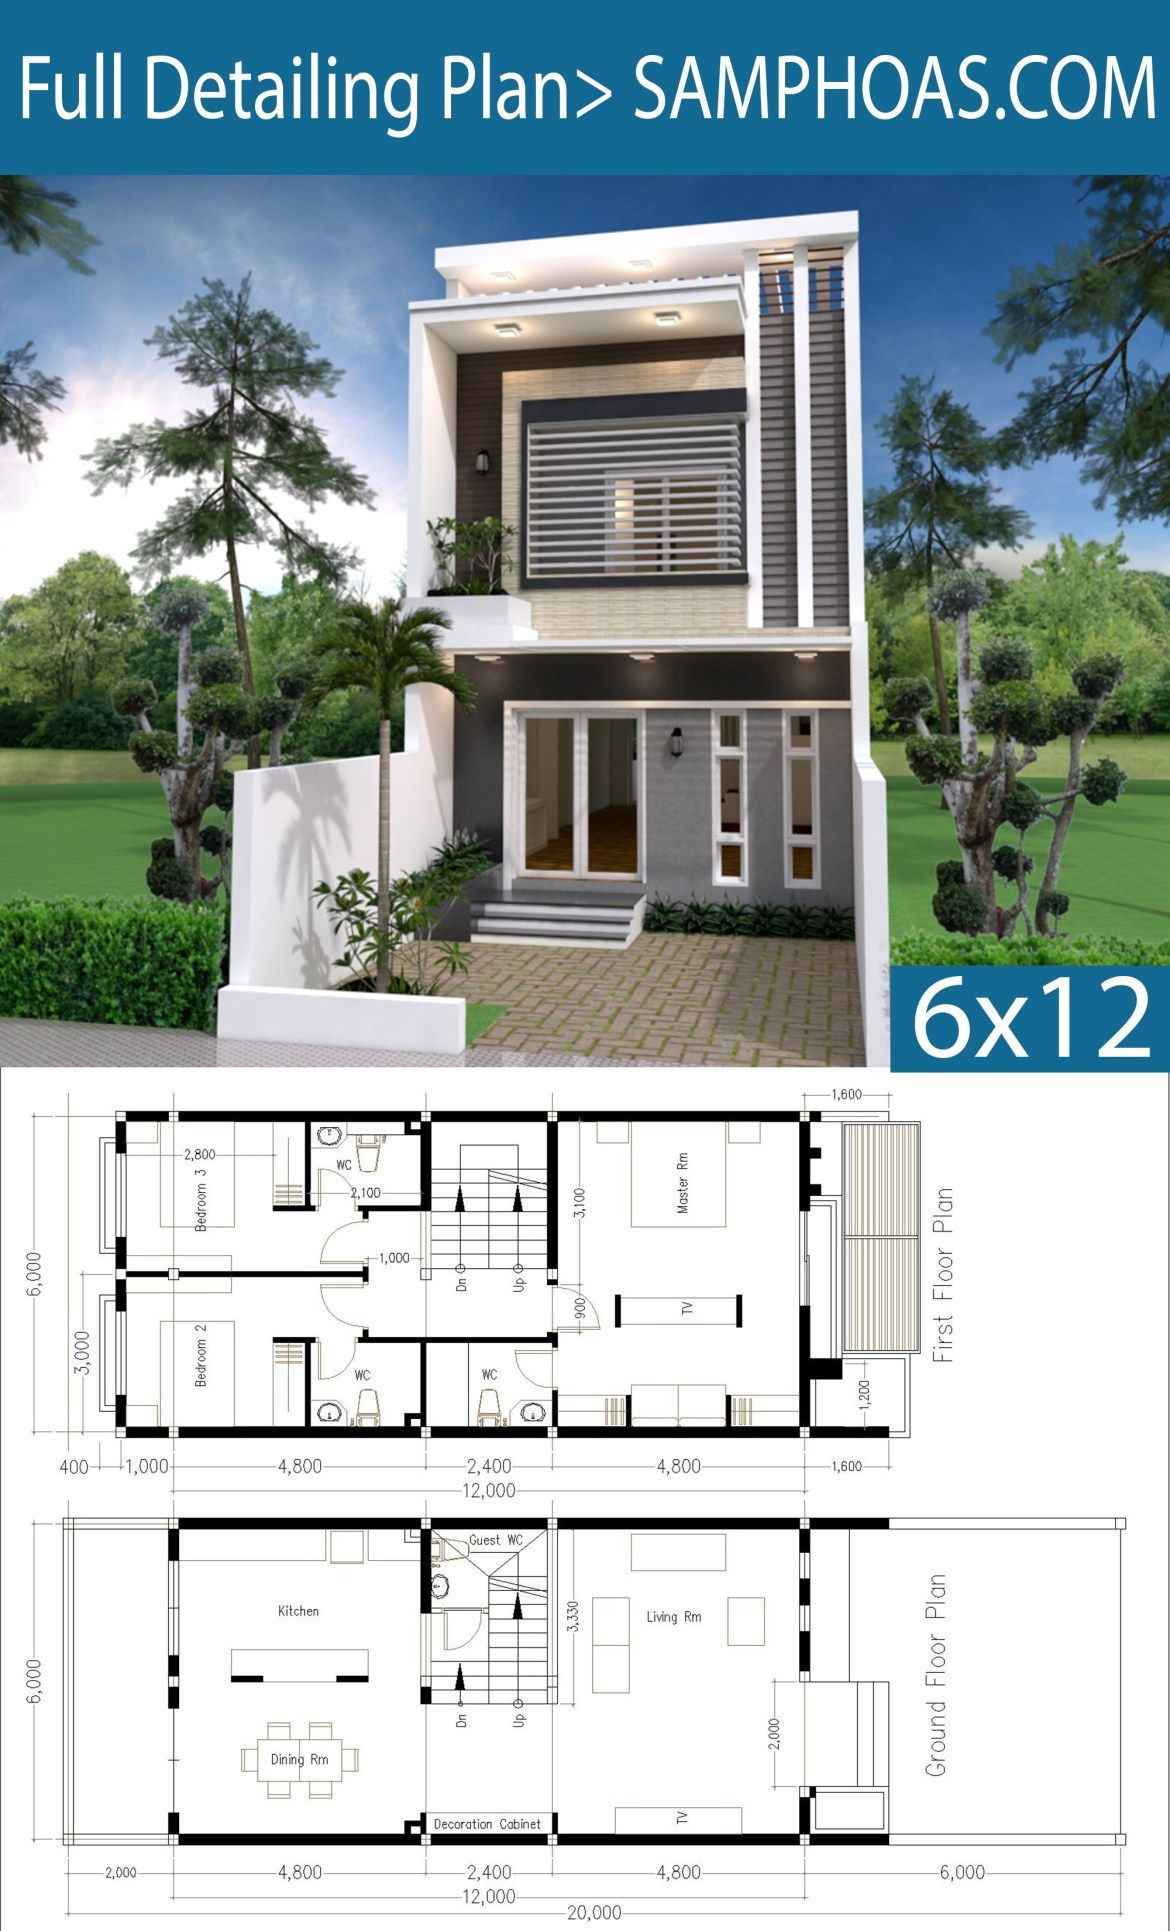 Modern Home Plan 6x12m With 3 Bedroom Samphoas Plansearch Modern House Plans Model House Plan Architectural House Plans